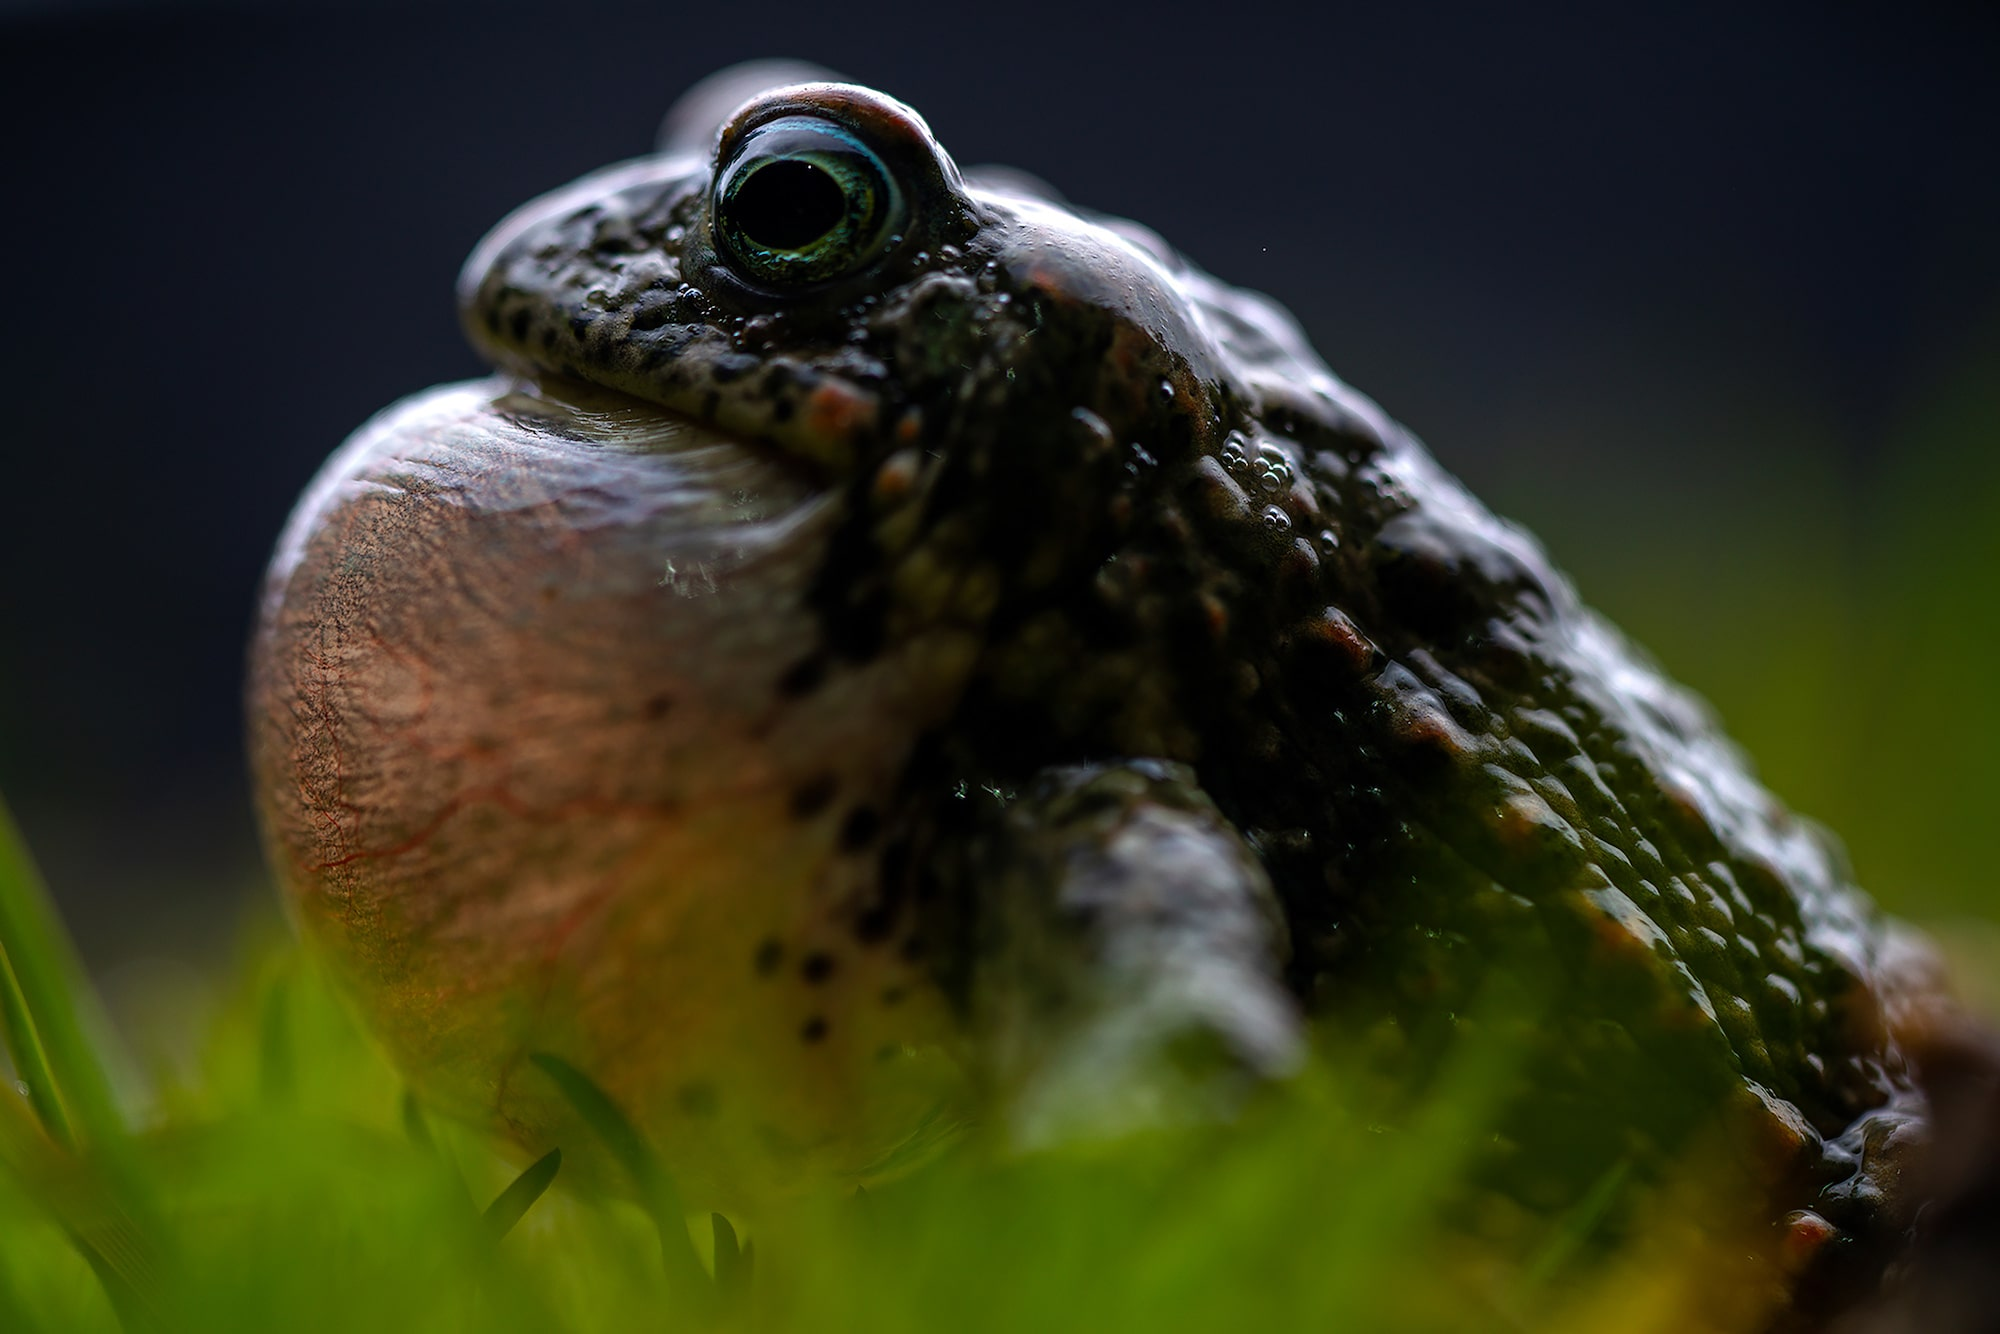 javier aznar sony alpha 7RIII profile of a large mouthed frog